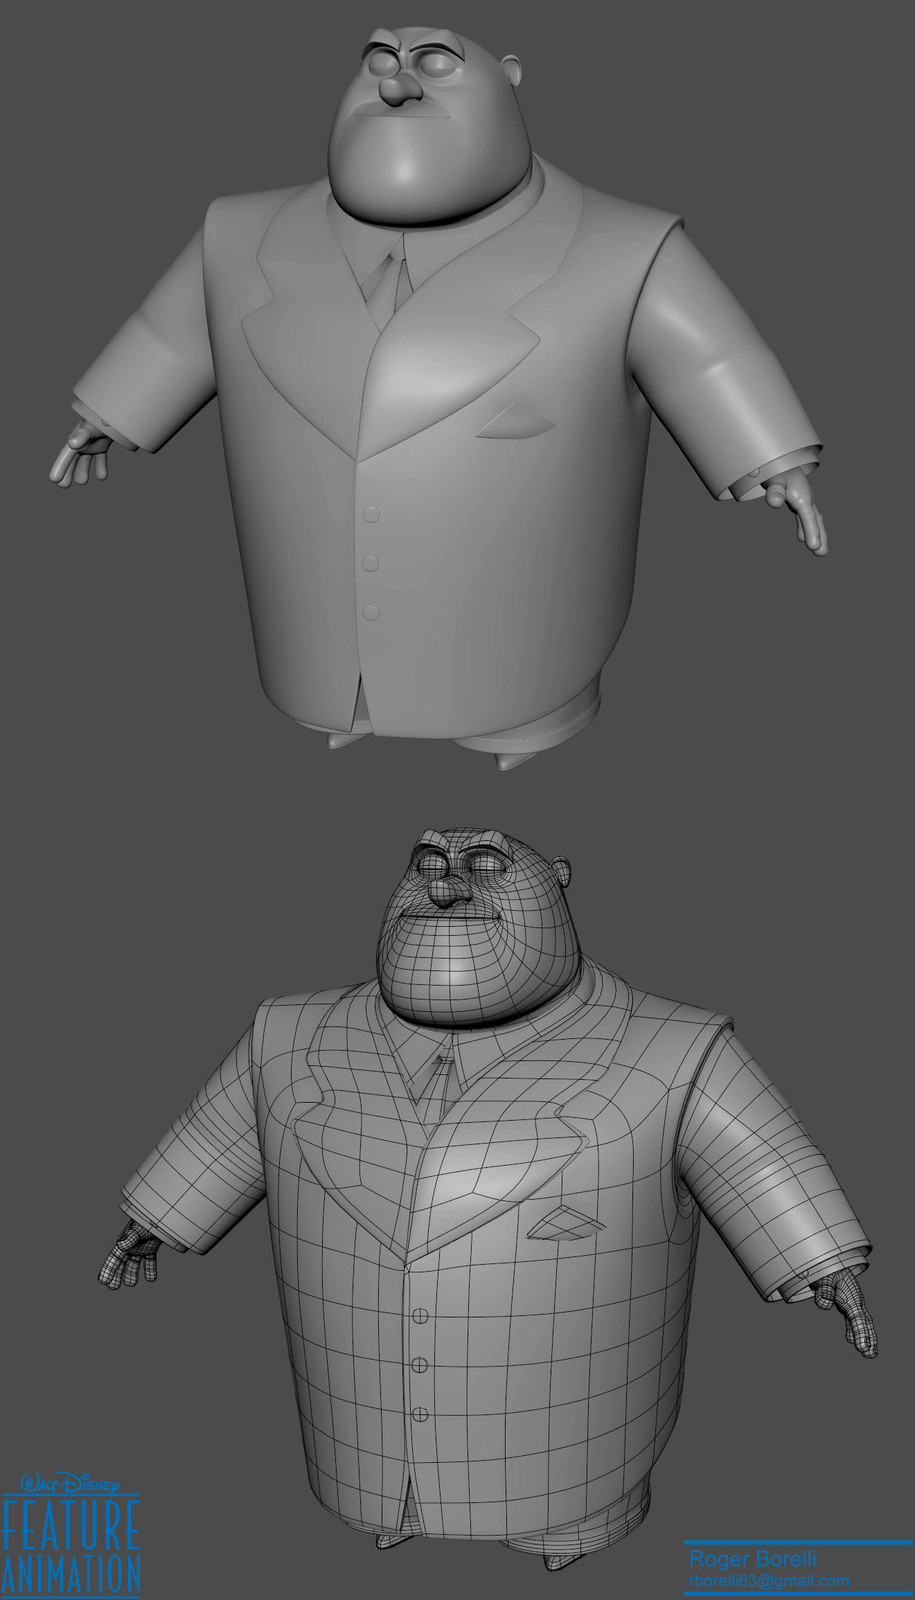 Invenco Iceo from  Meet the Robinsons